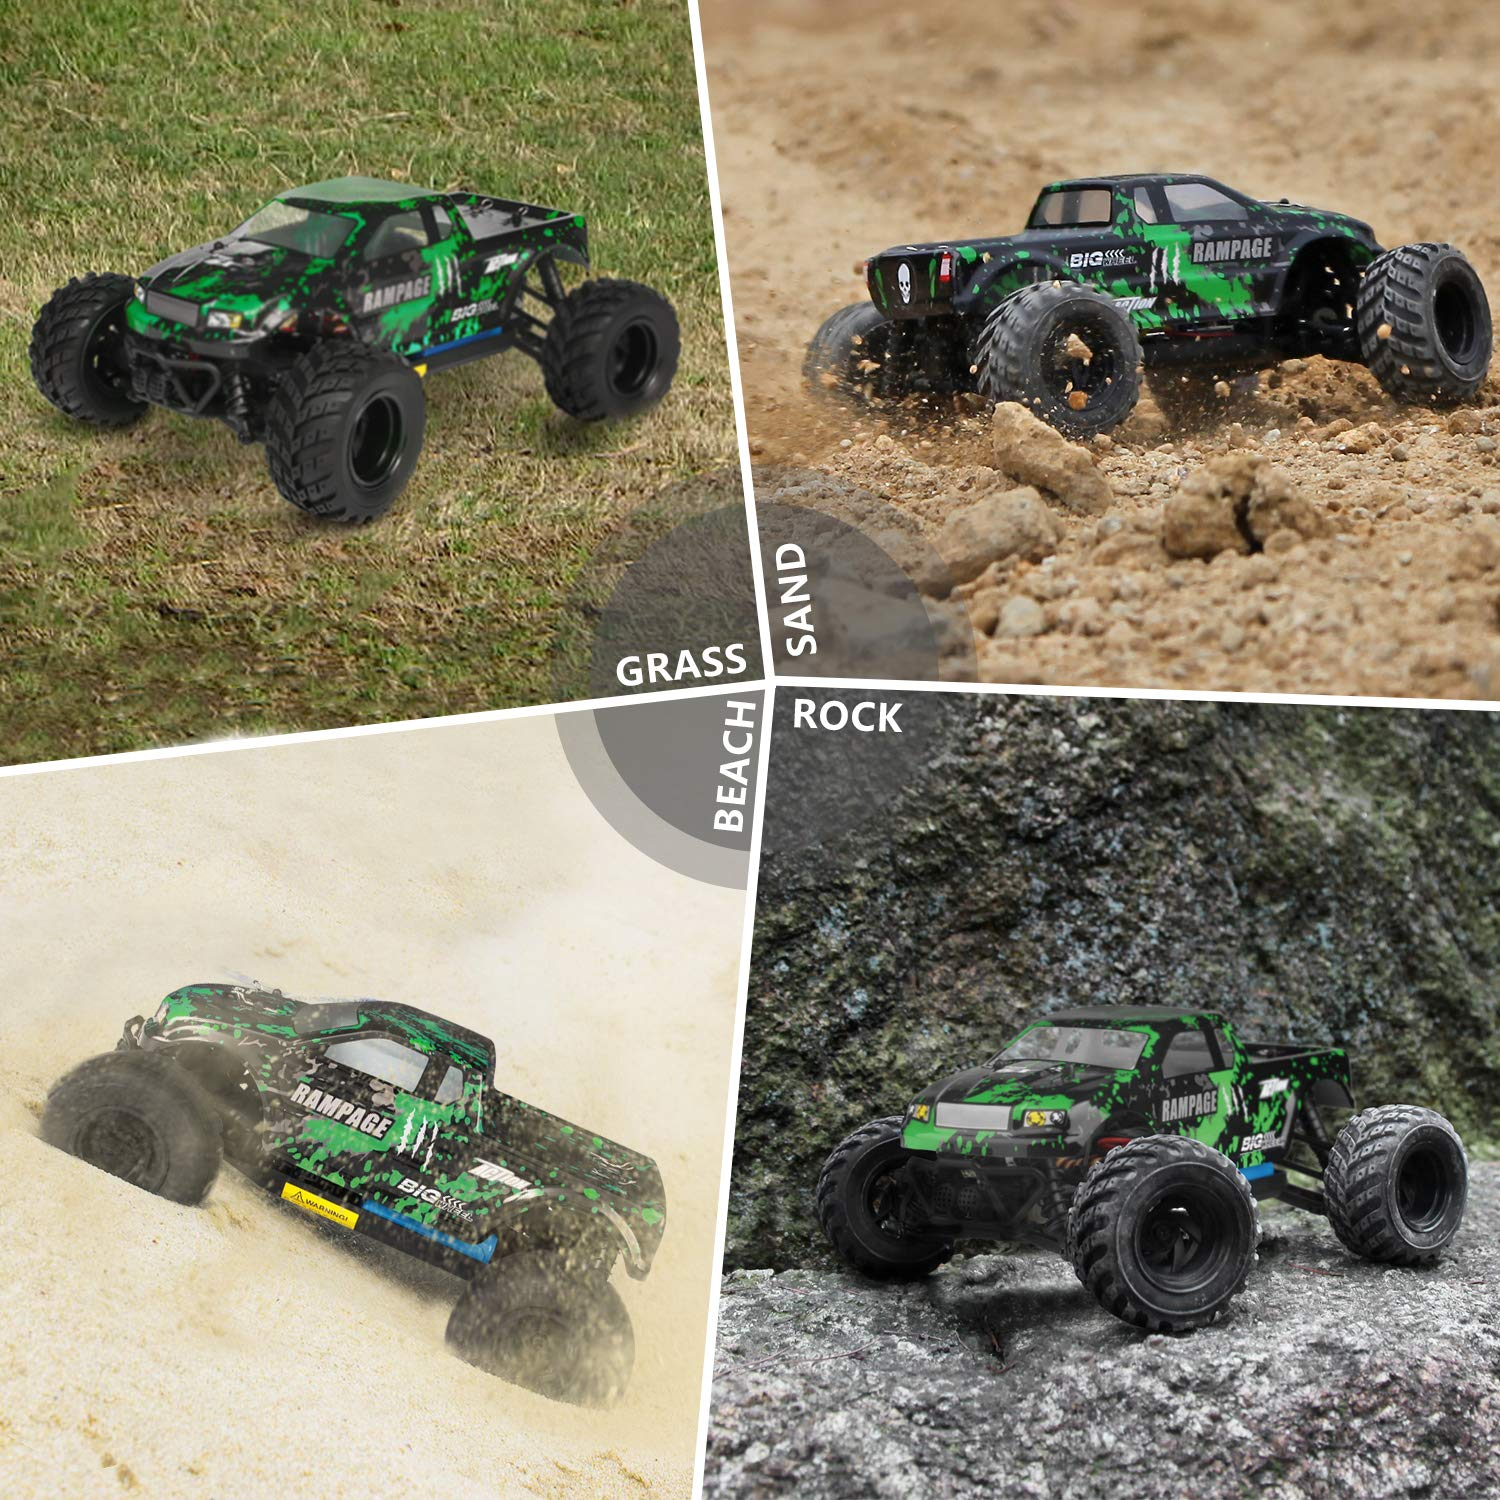 HBX 1:18 Scale All Terrain RC Car 18859E, 30+MPH High Speed 4WD Electric Vehicle with 2.4 GHz Radio Controller, Waterproof Off-Road Truck Included Battery and Charger by BBM HOBBY (Image #3)